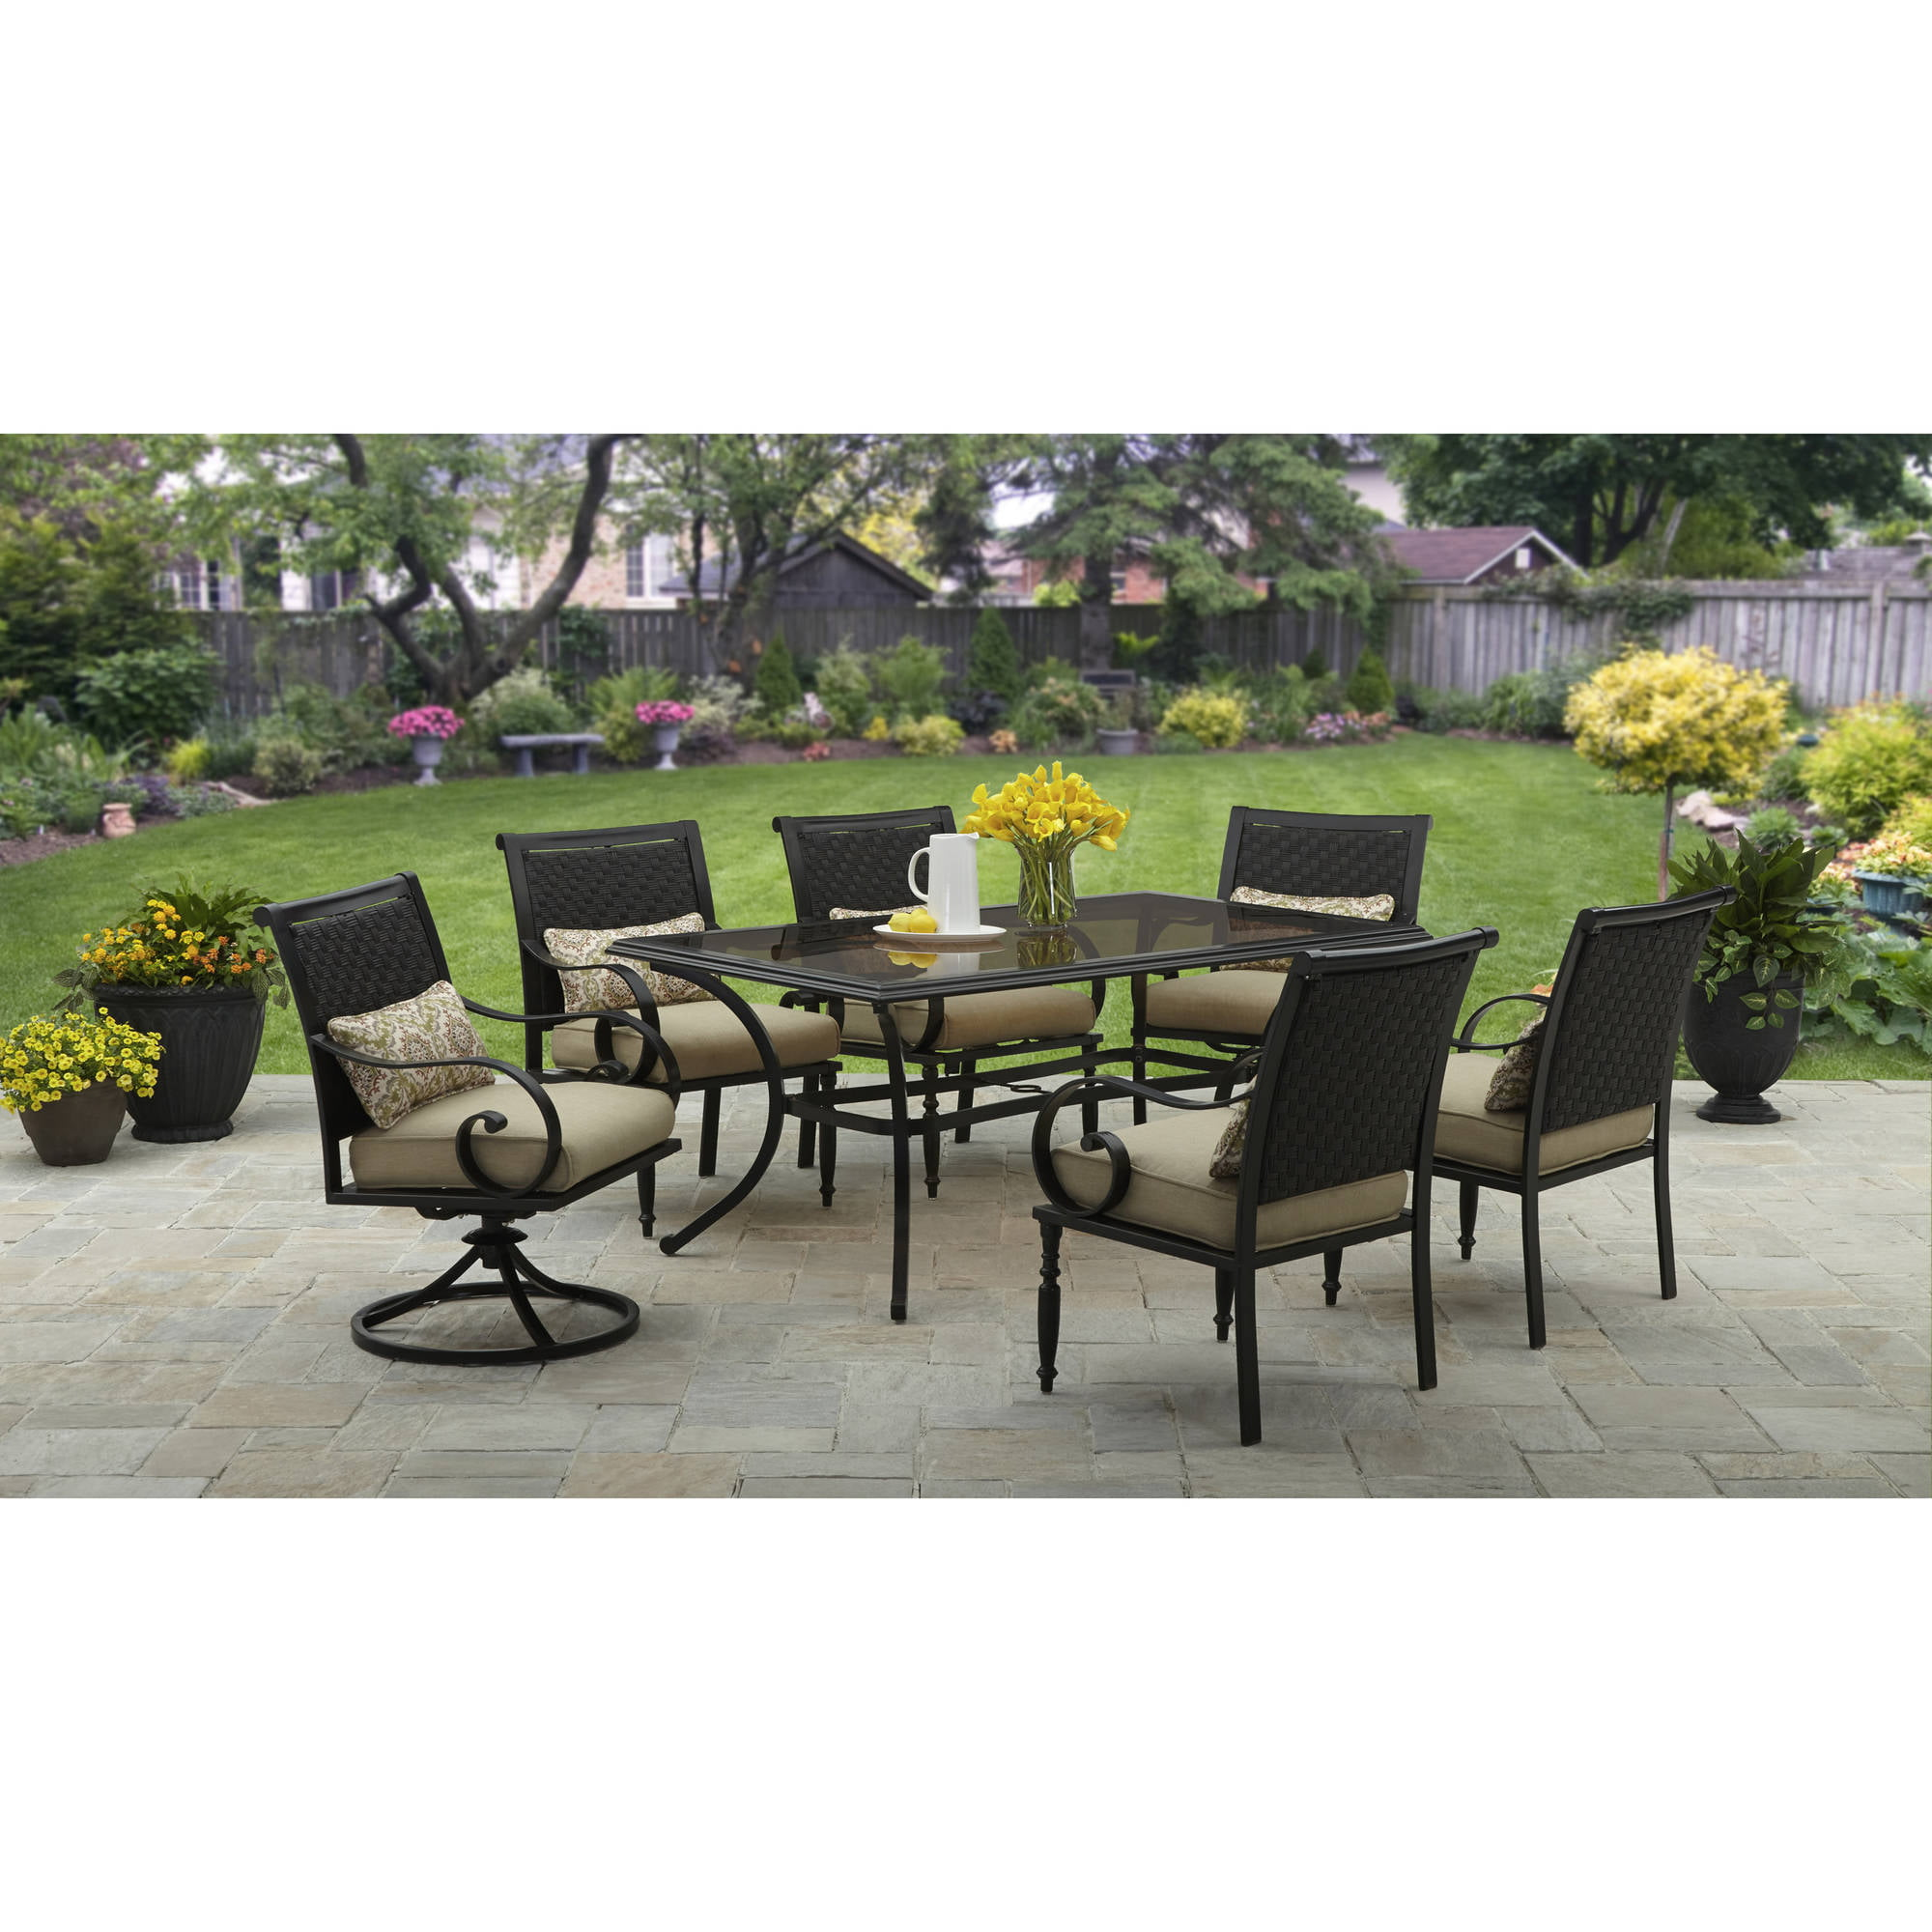 Inspirational 6 Piece Patio Dining Set